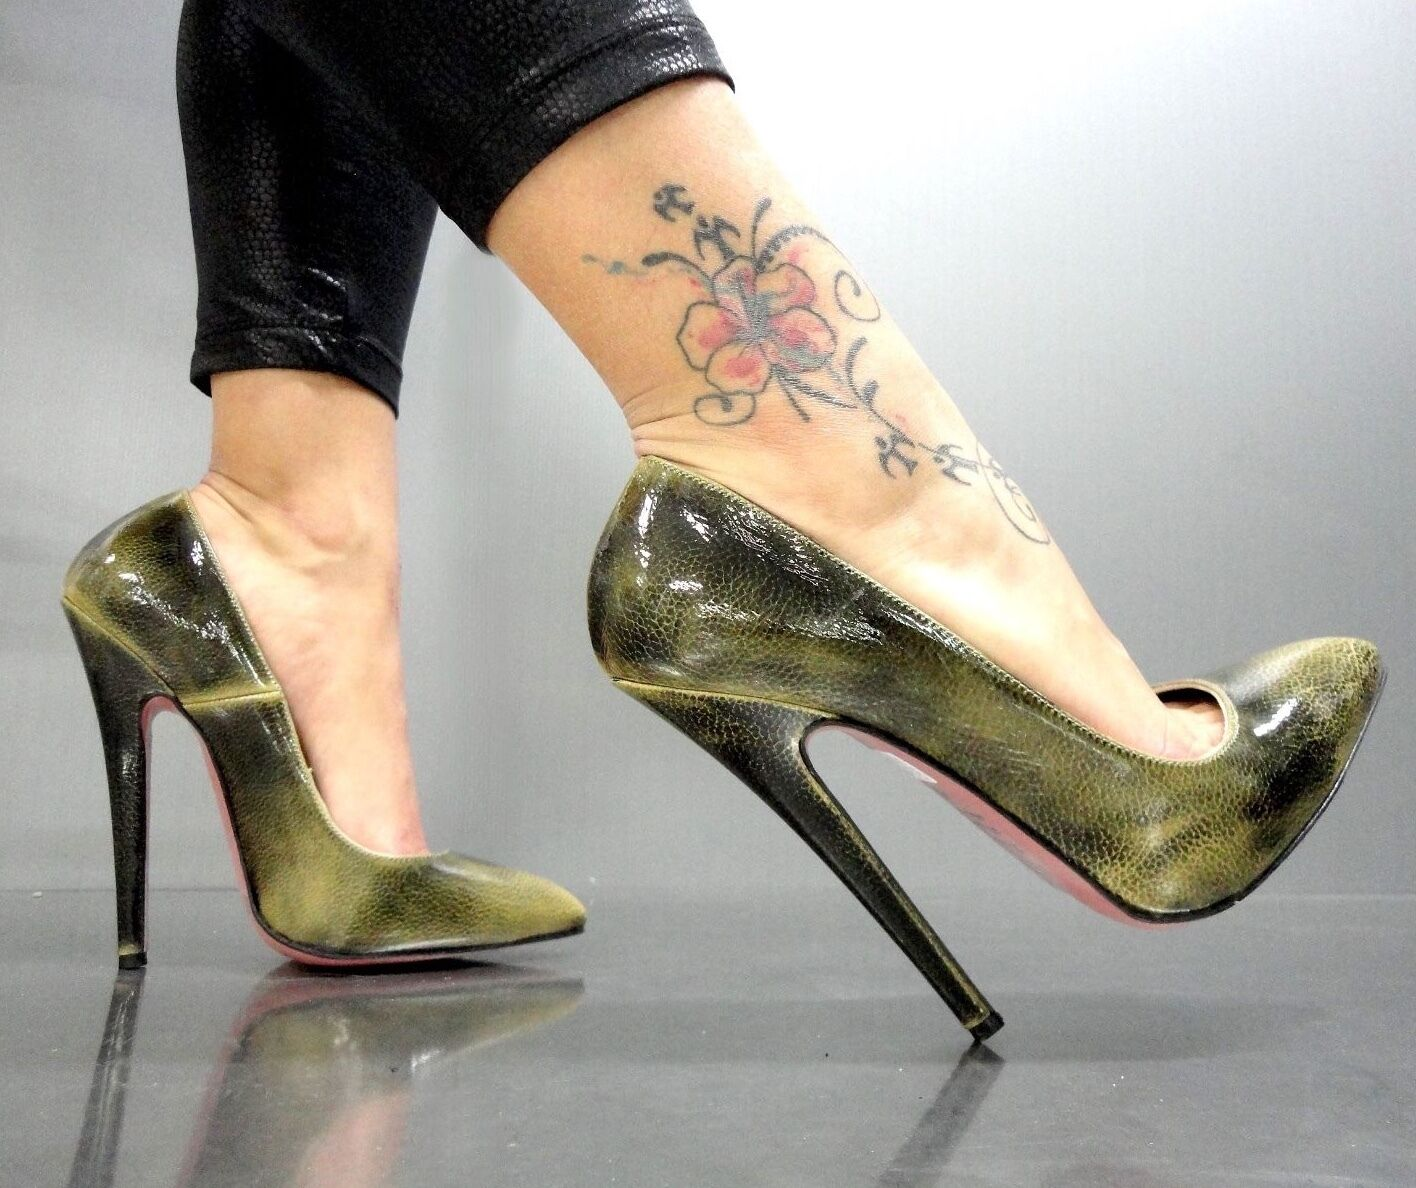 Mori Made in  New High Sky Heels PUMPS SCHUHE shoes Leather Green Green 44